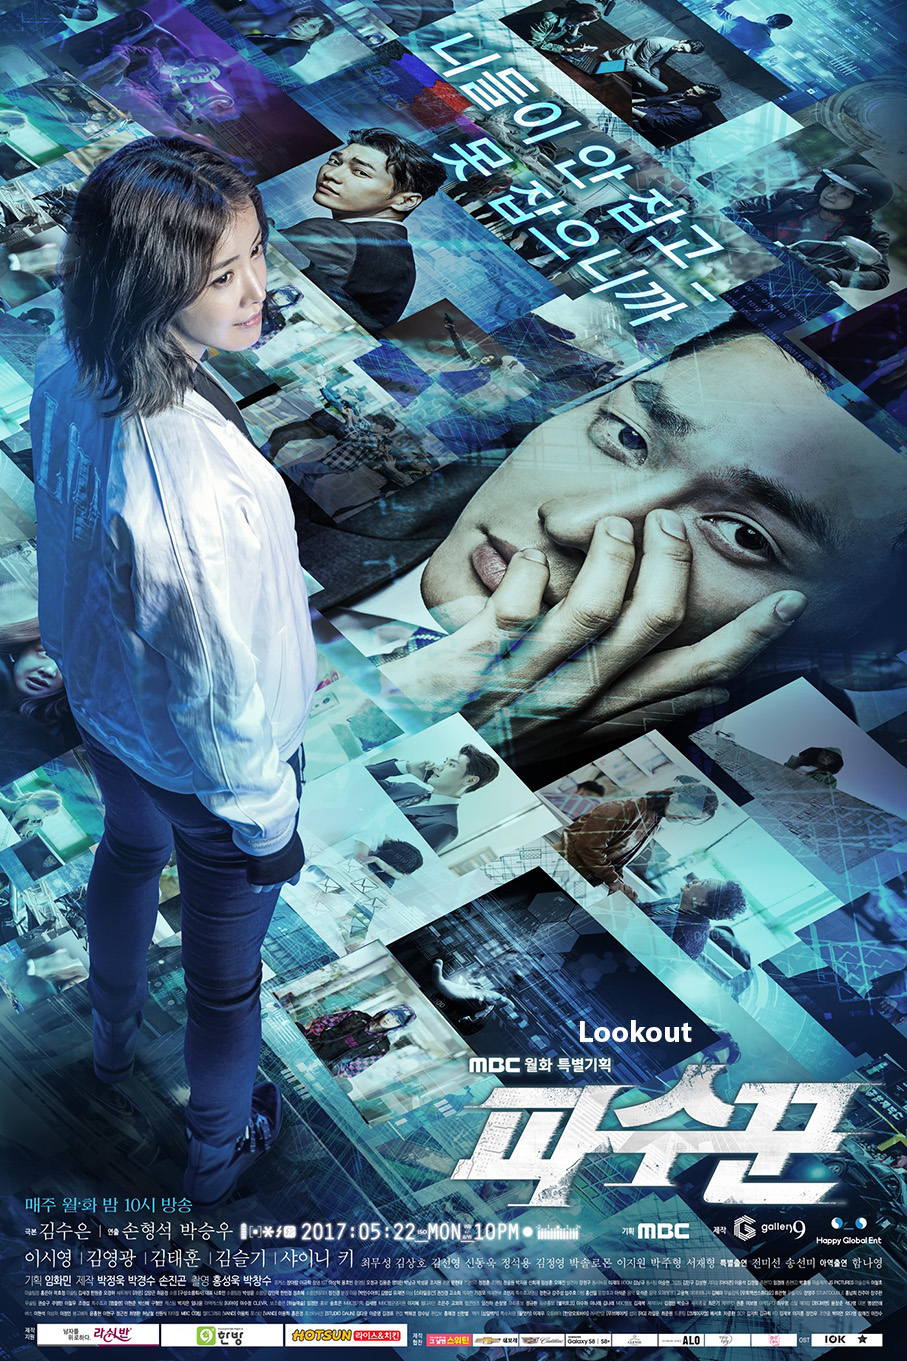 Lookout [2017 Korea Series] 32 eps END (4) Action, Crime, Drama